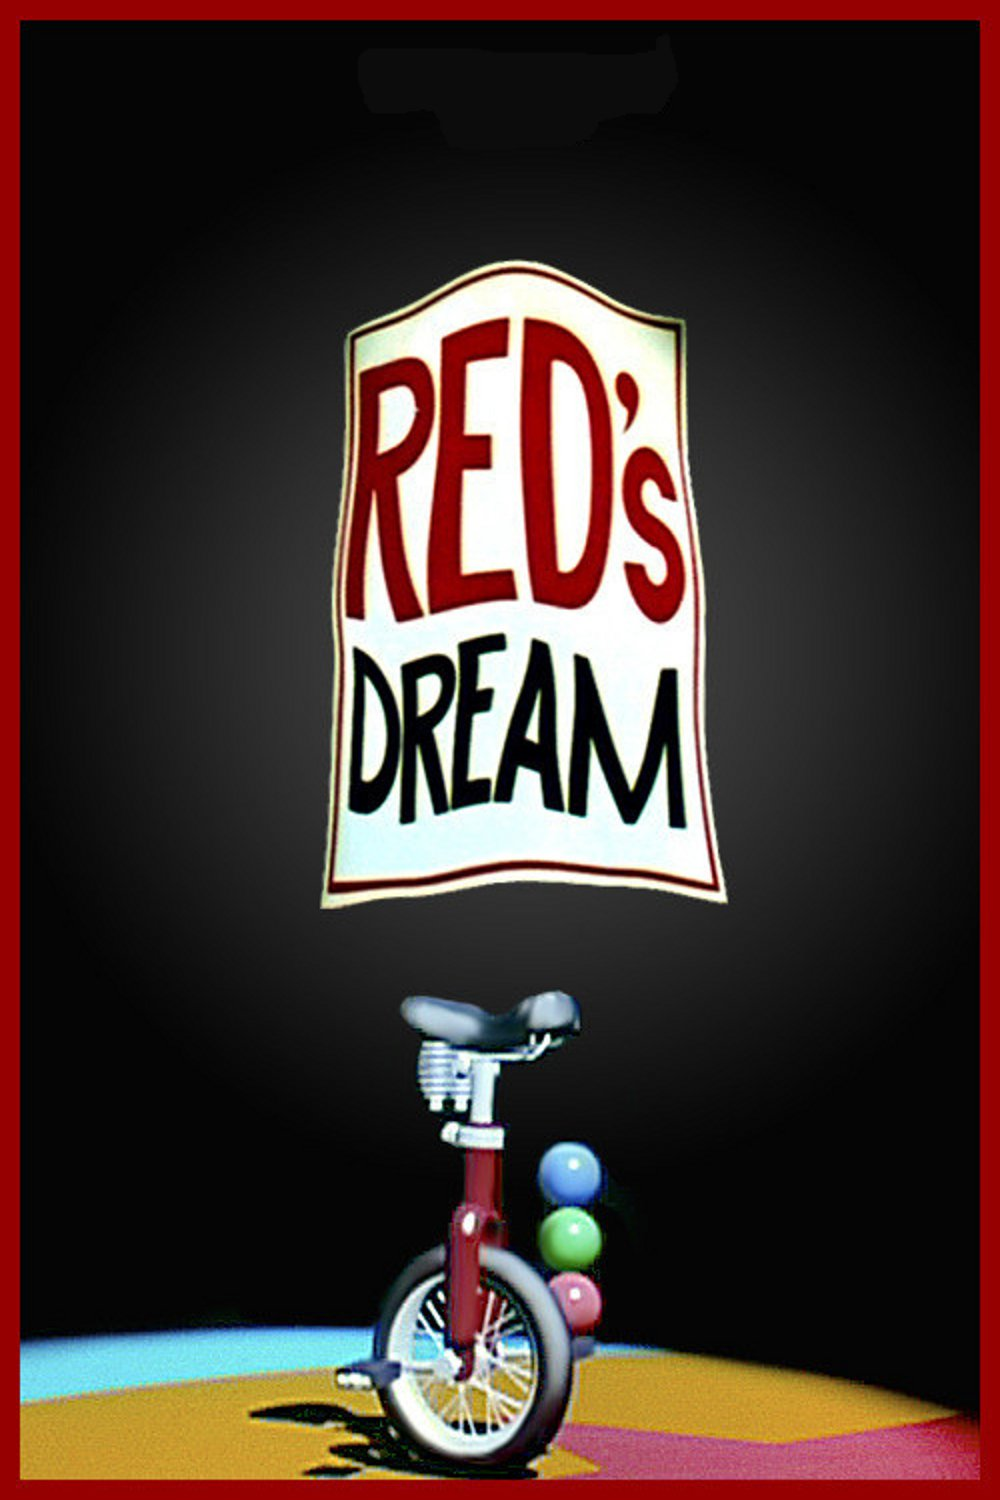 pixar disney affiche poster red dream